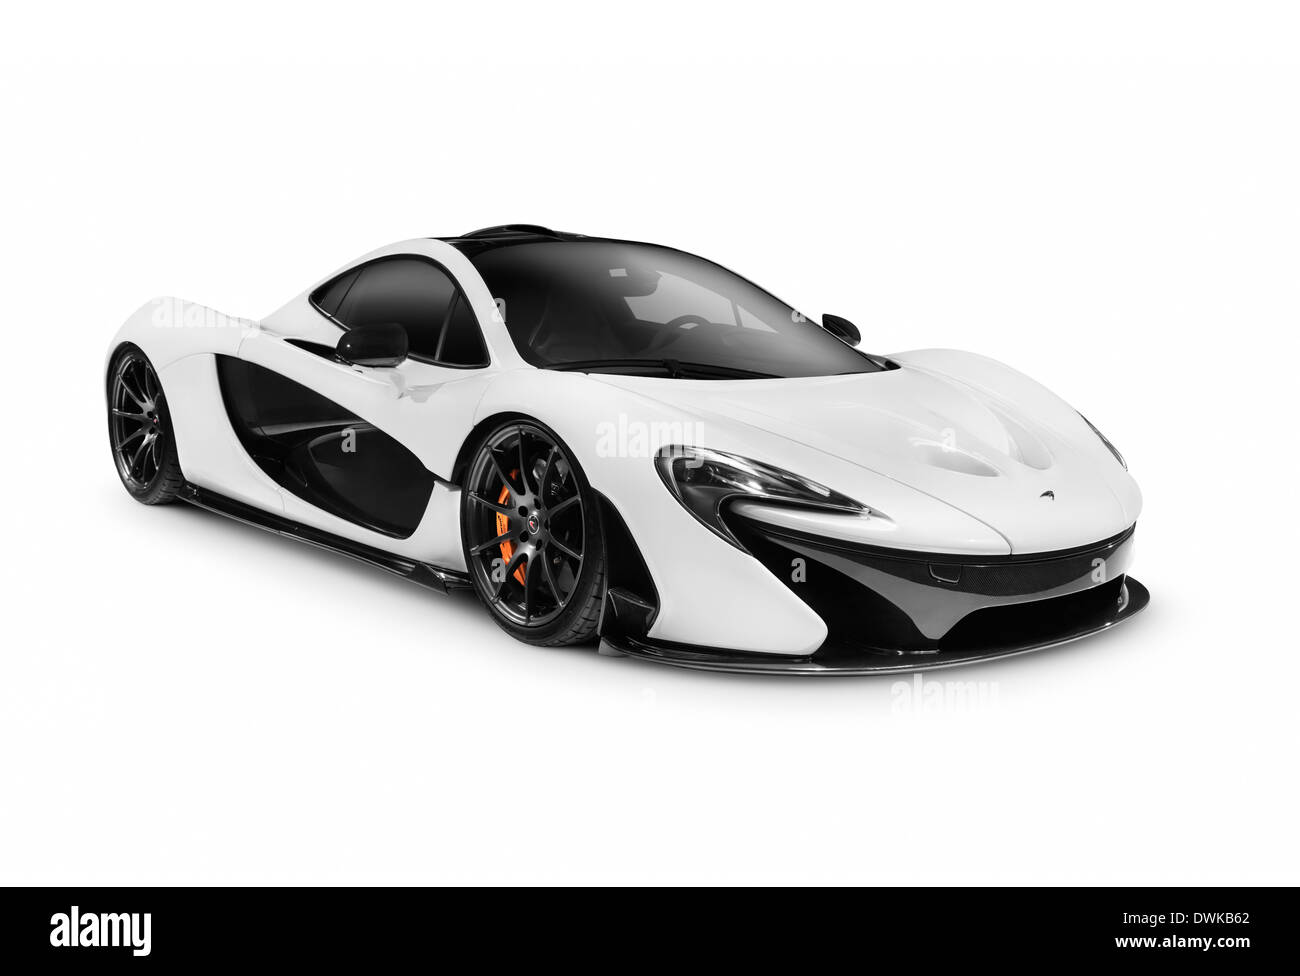 White 2014 Mclaren P1 Plug In Hybrid Supercar Isolated Sports Car On Stock Photo Alamy